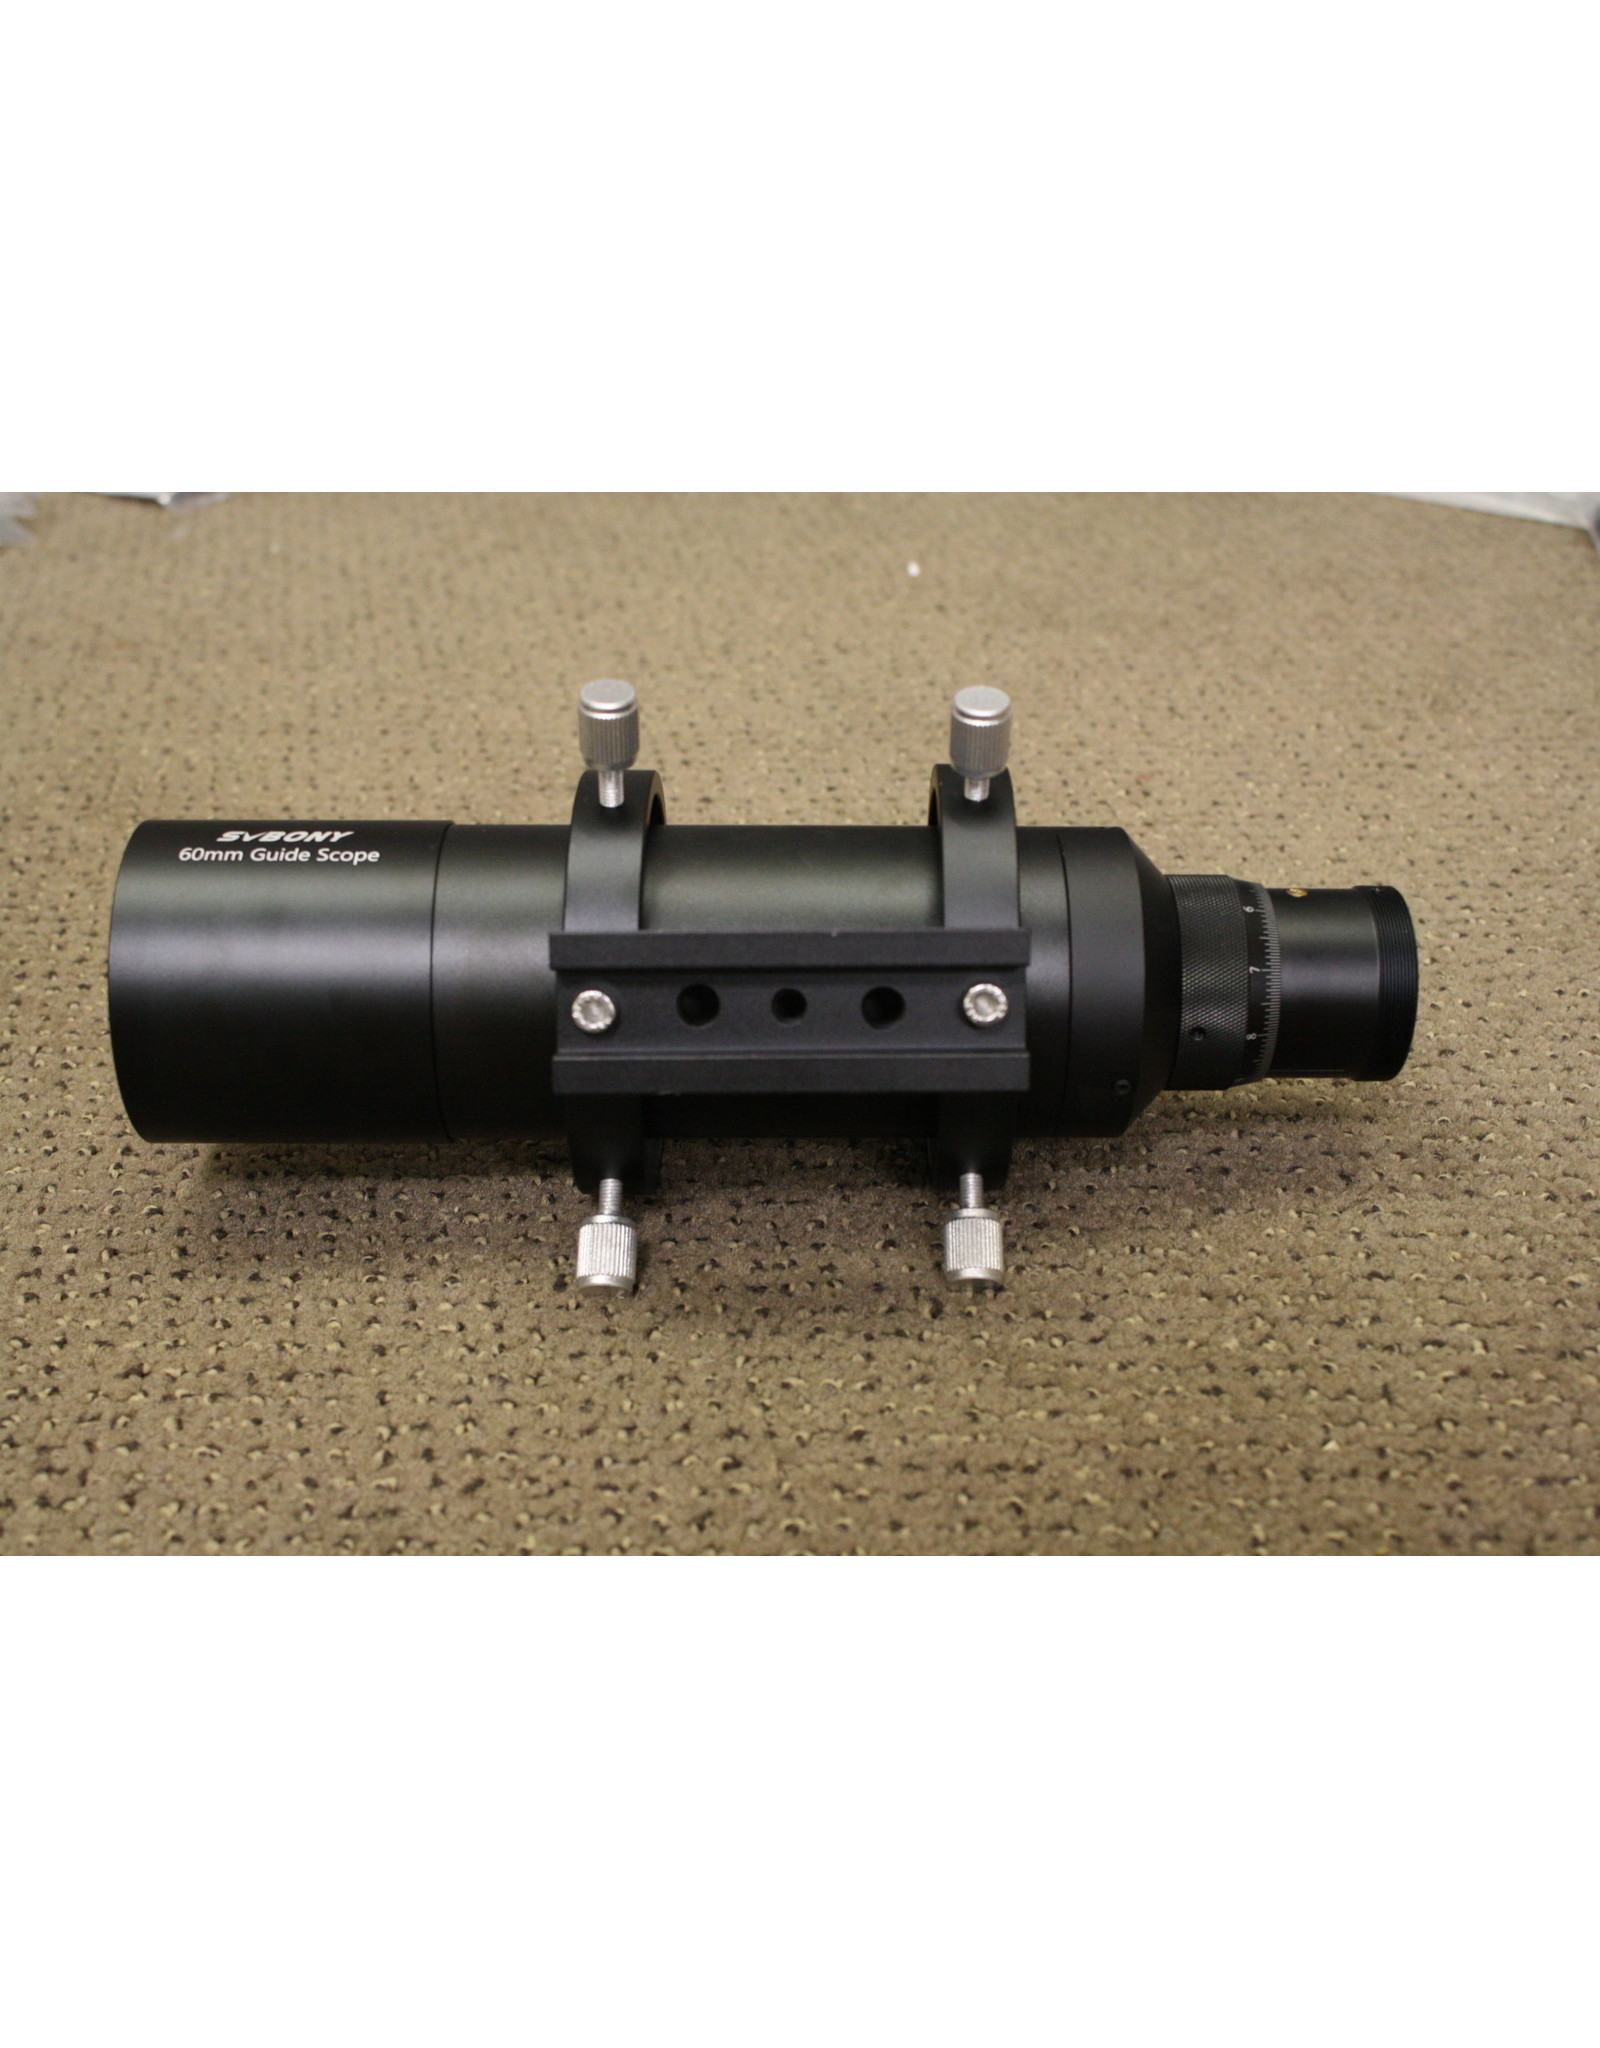 """Arcturus SVBONY 60mm Multi-Use Guide Scope FMC F4+1.25""""Double Helical Focuser"""